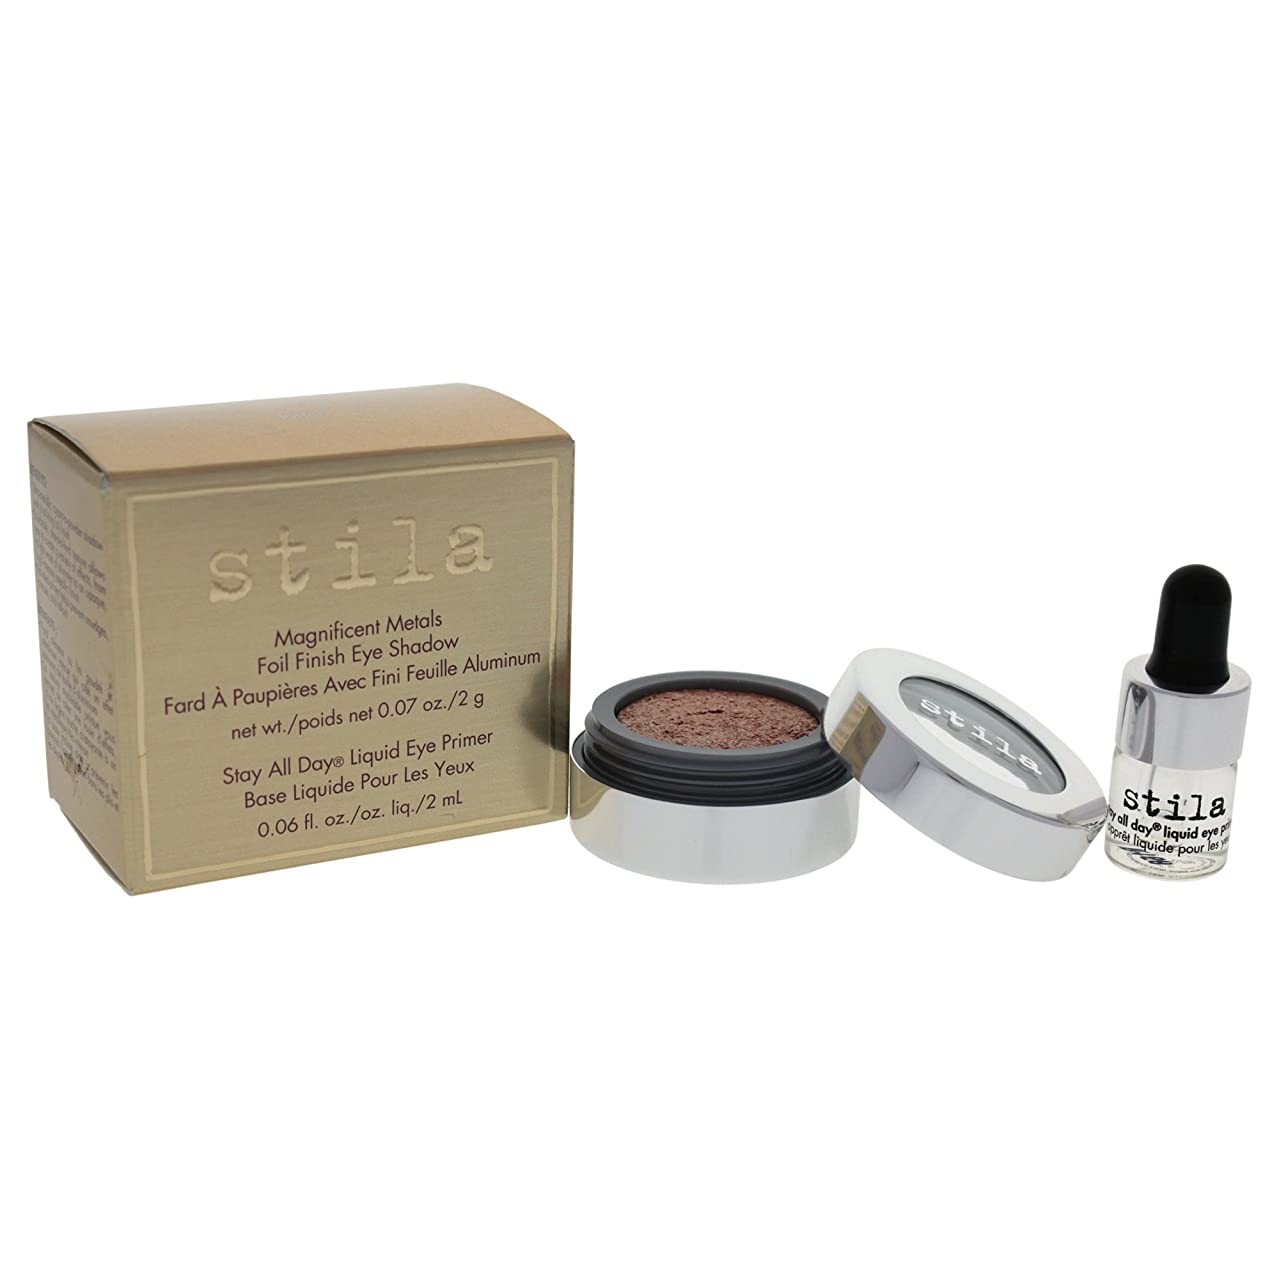 栄養強要モススティラ Magnificent Metals Foil Finish Eye Shadow With Mini Stay All Day Liquid Eye Primer - Metallic Kitten 2pcs並行輸入品